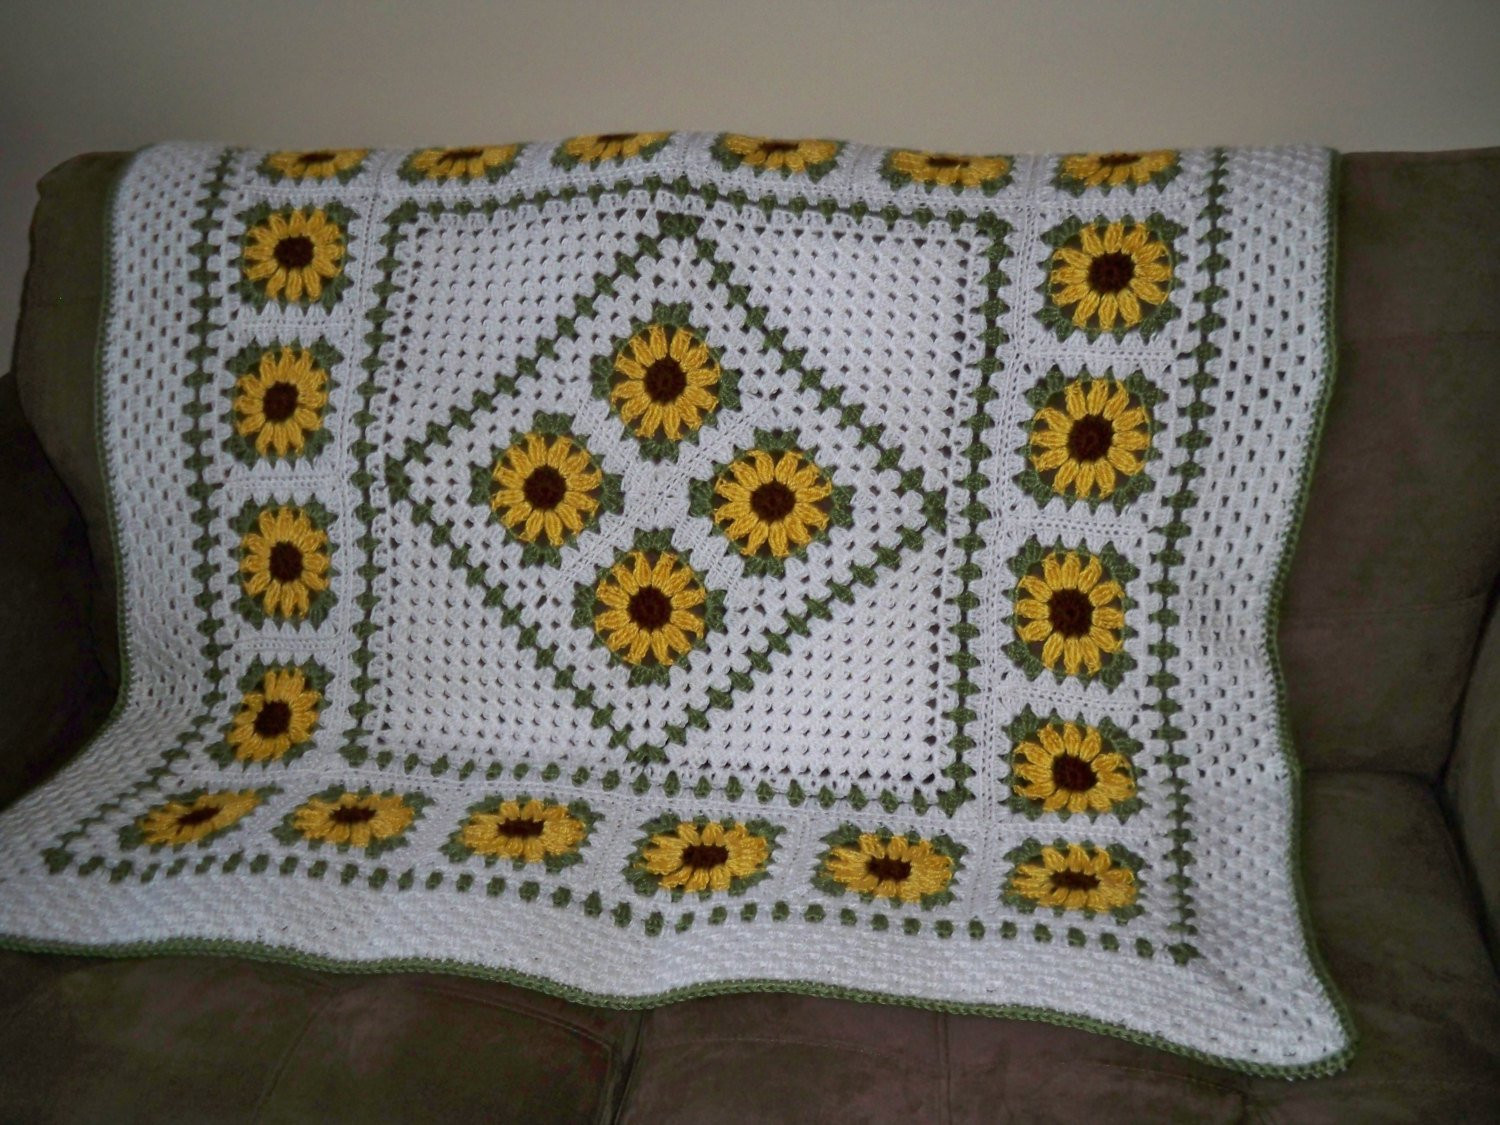 Fresh Crochet Pattern Sunflower Lapghan Sunflower Crochet Blanket Of Contemporary 48 Ideas Sunflower Crochet Blanket